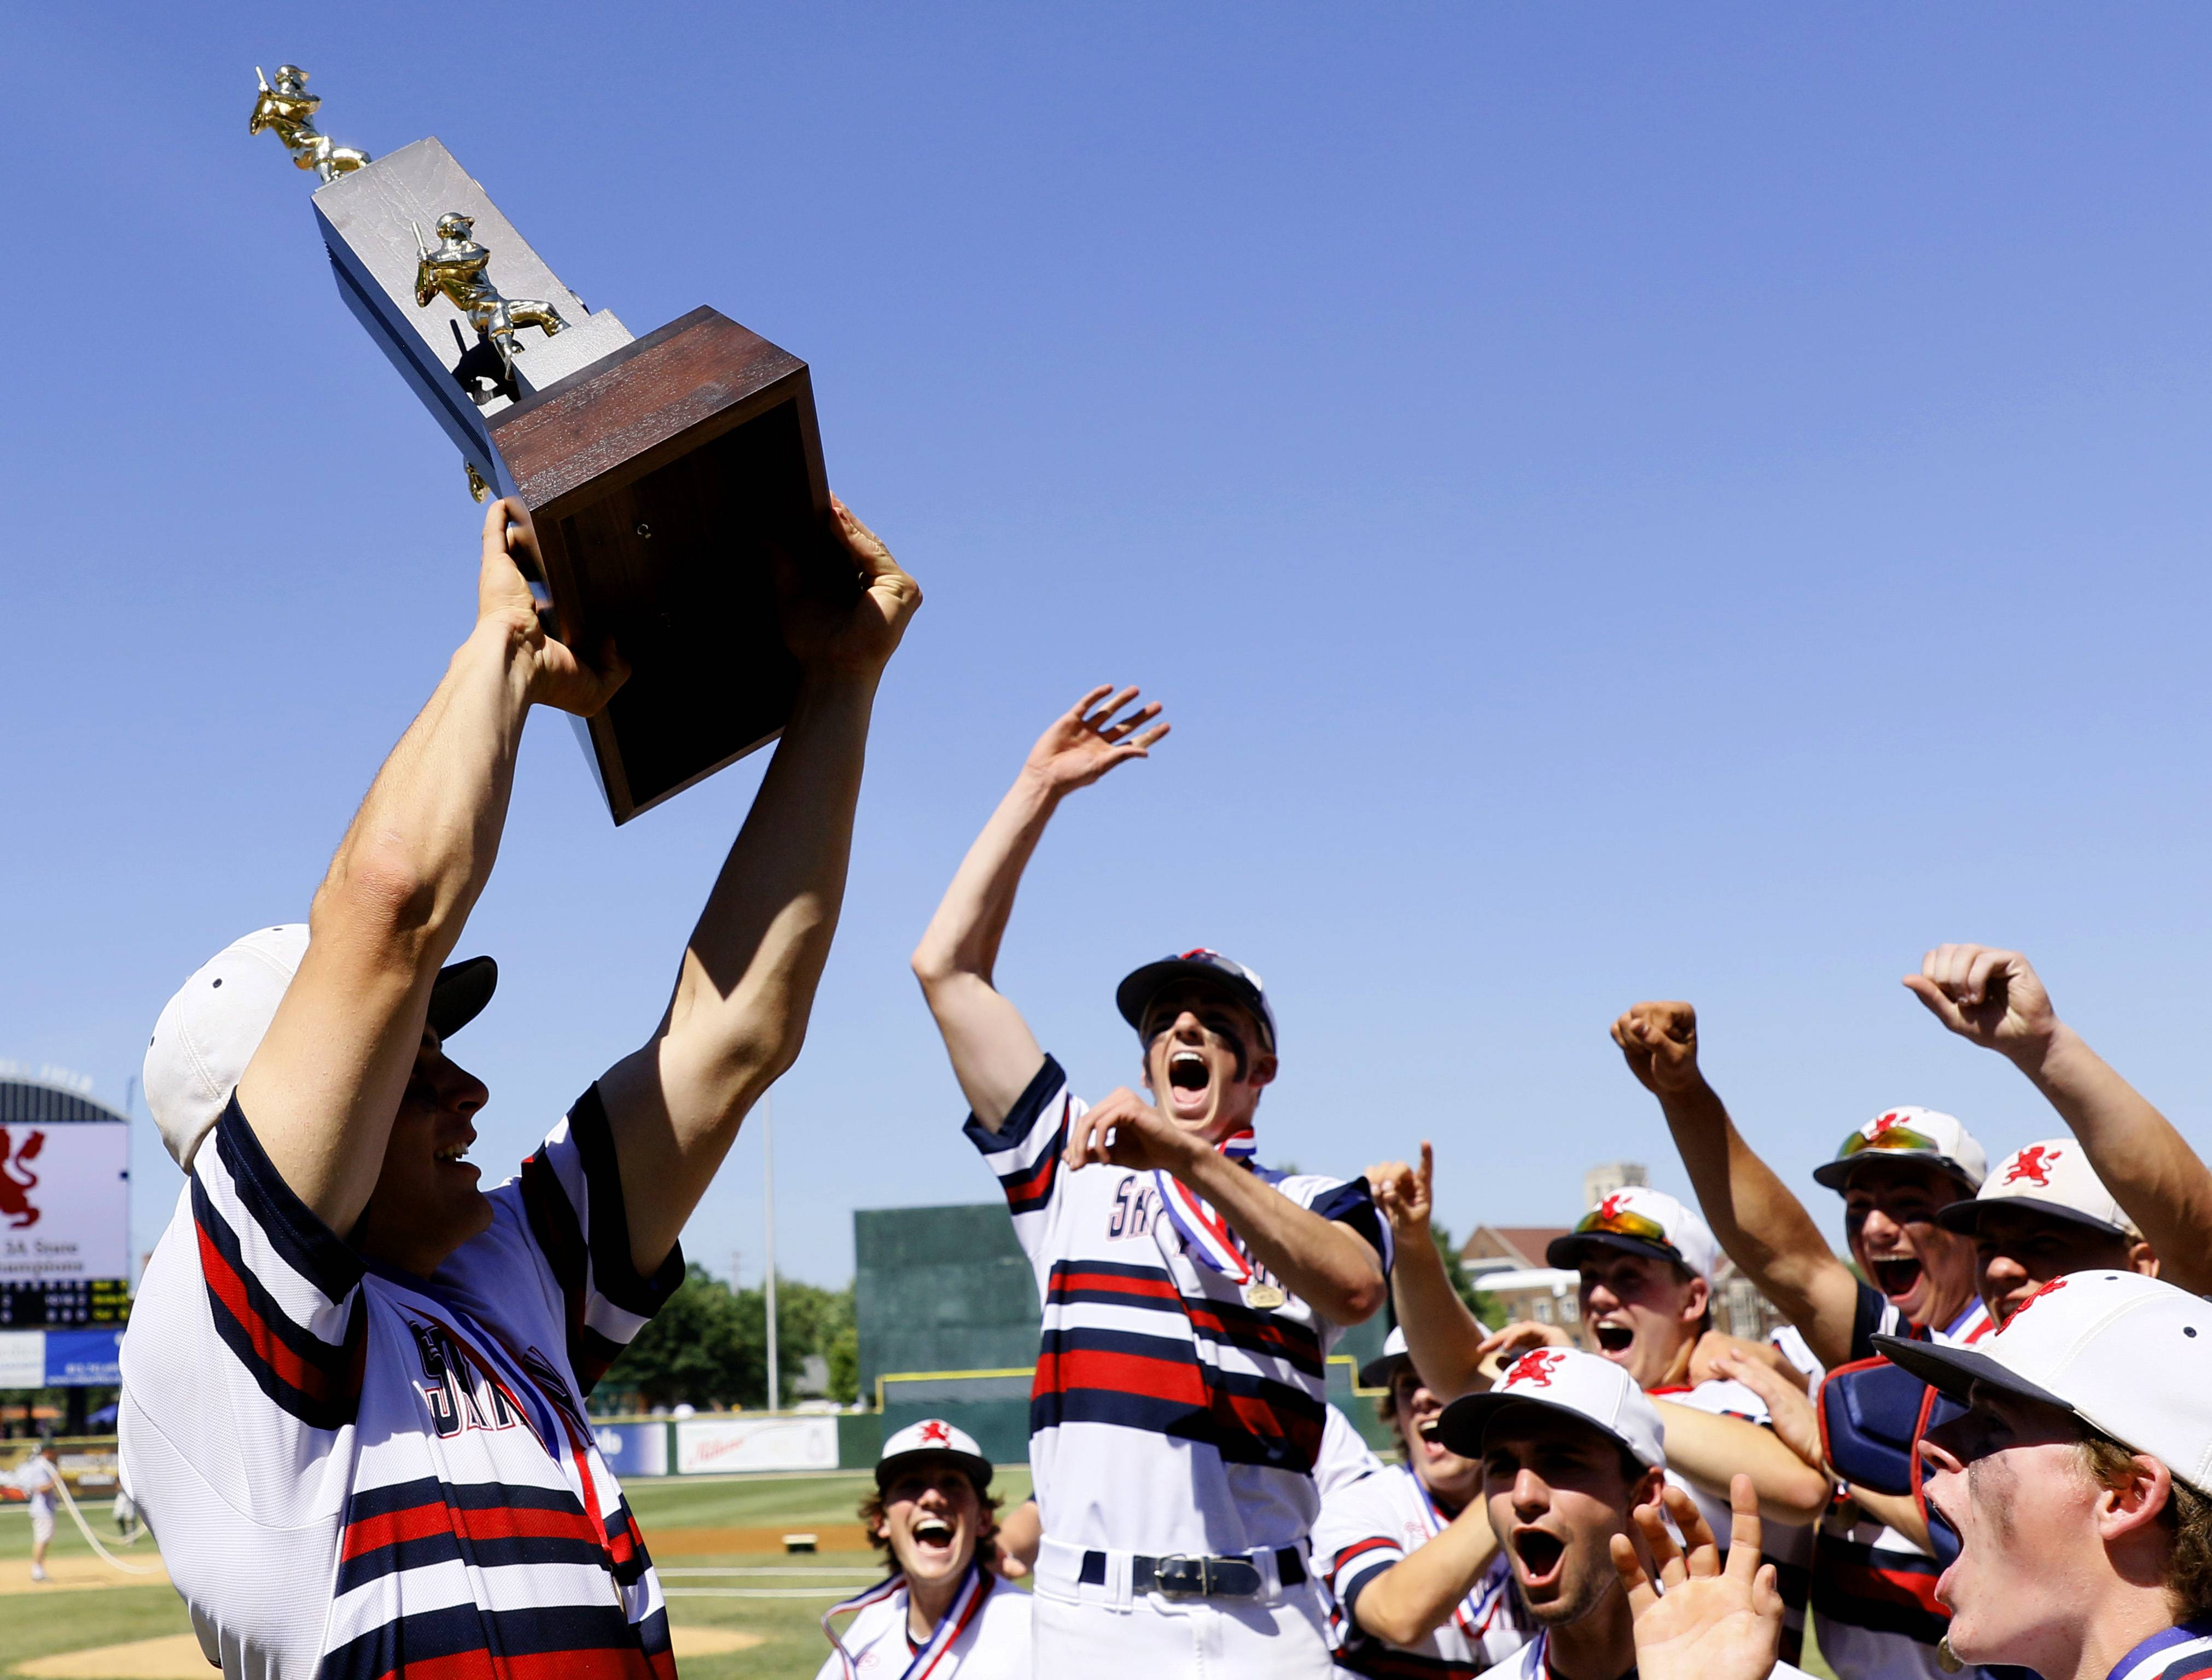 St. Viator players prepare to celebrate their Class 3A baseball state championship after a 10-8 win over Marian Catholic on Saturday in Joliet.